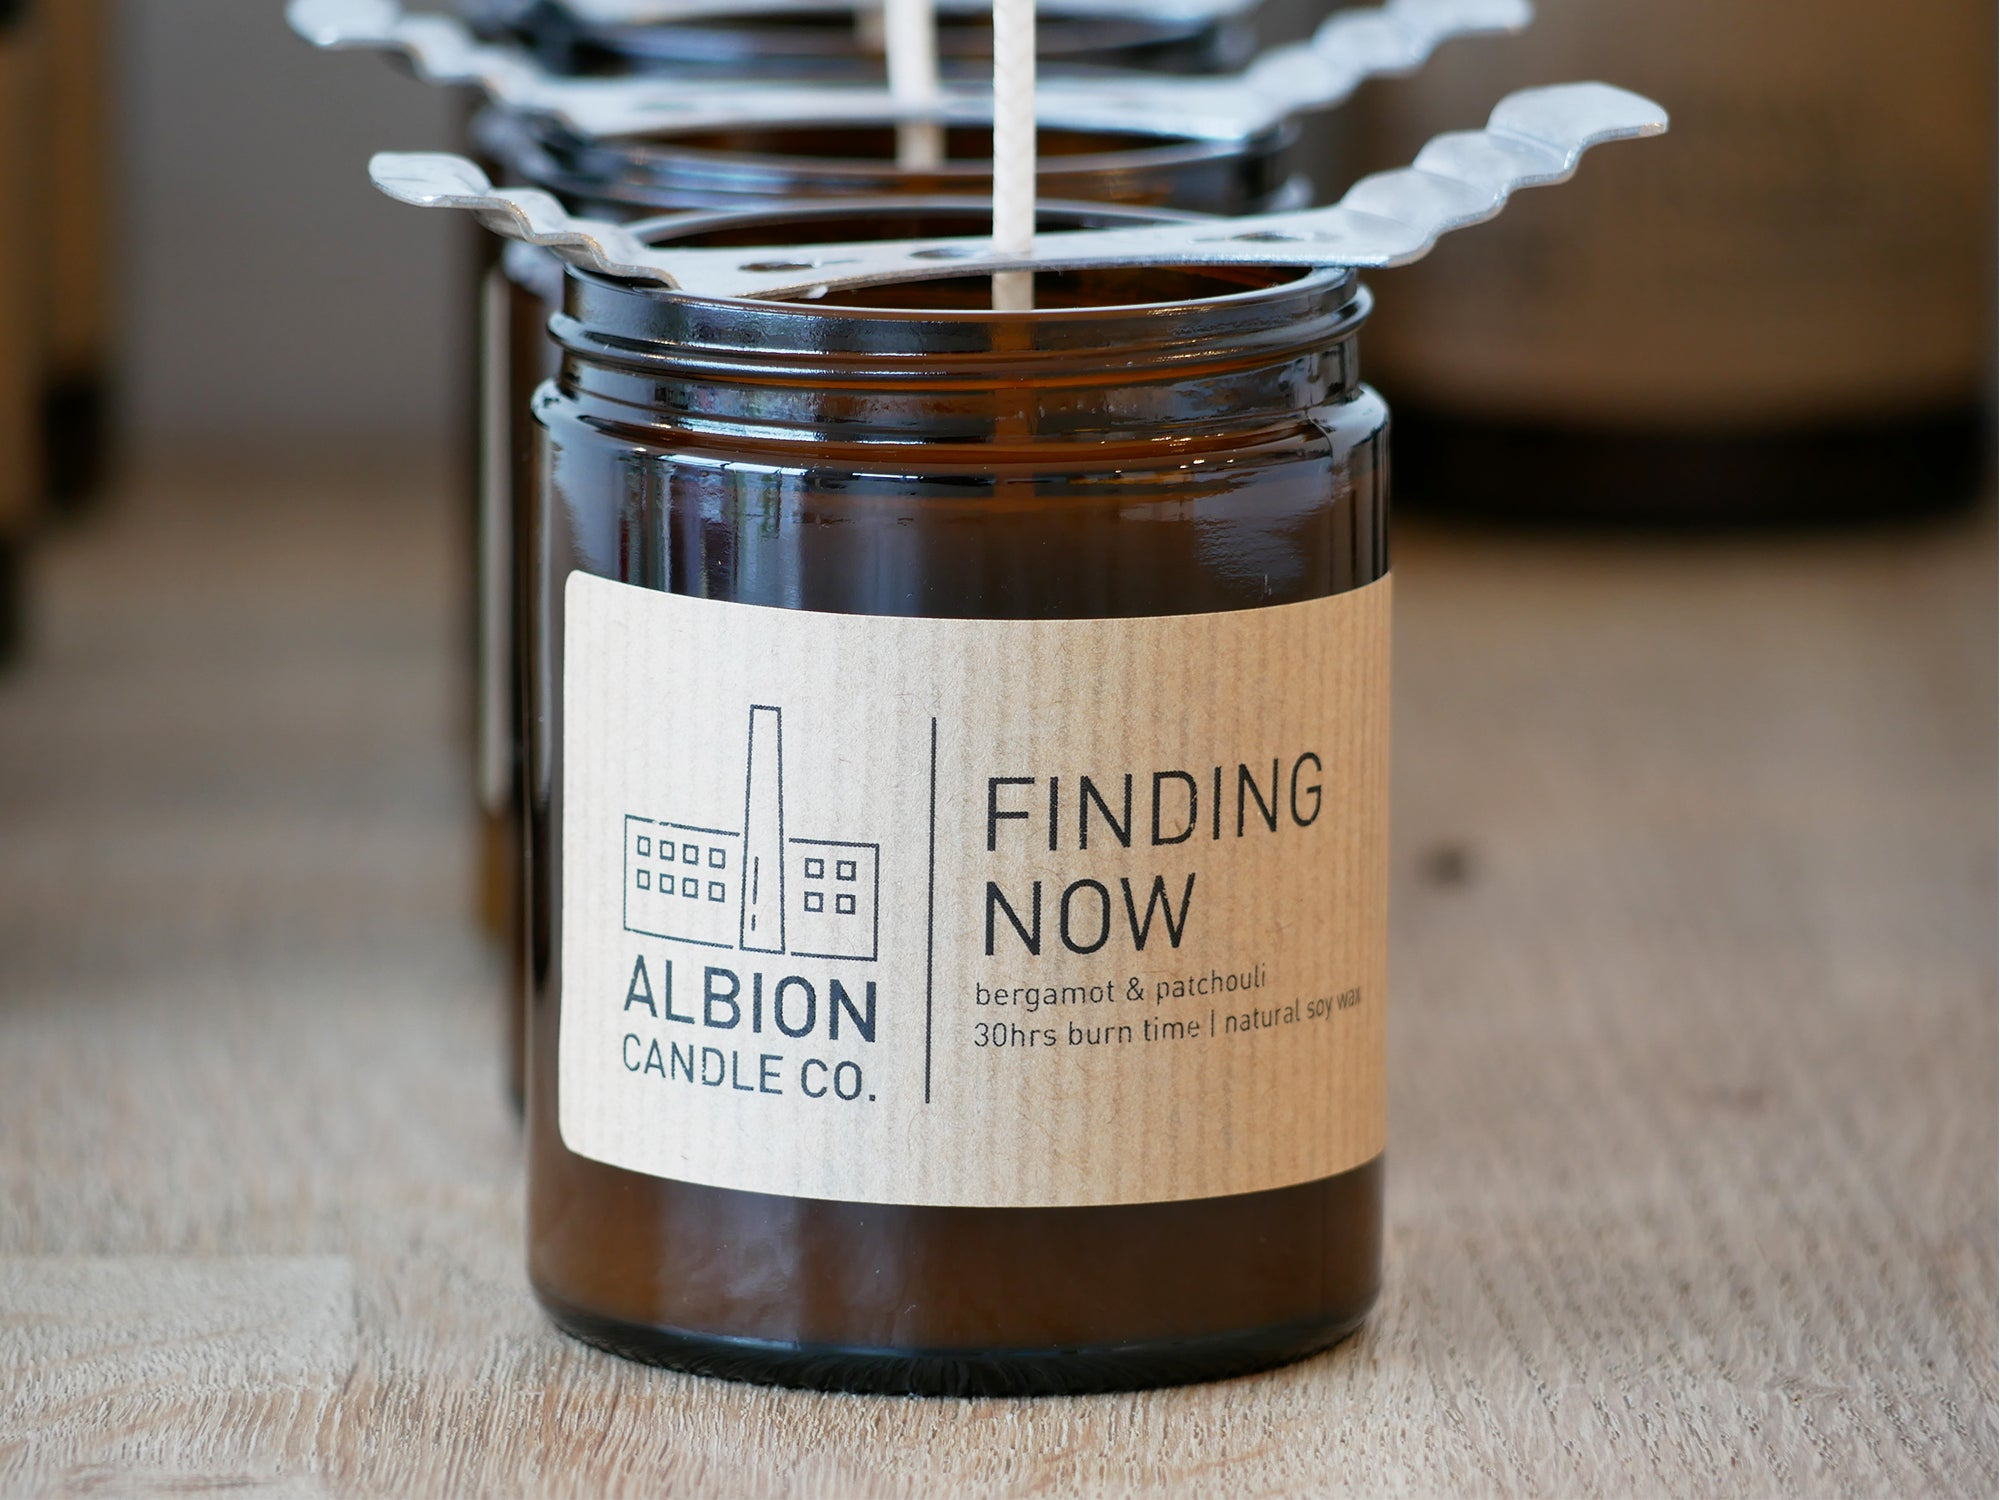 FINDING NOW - albion-candle-co